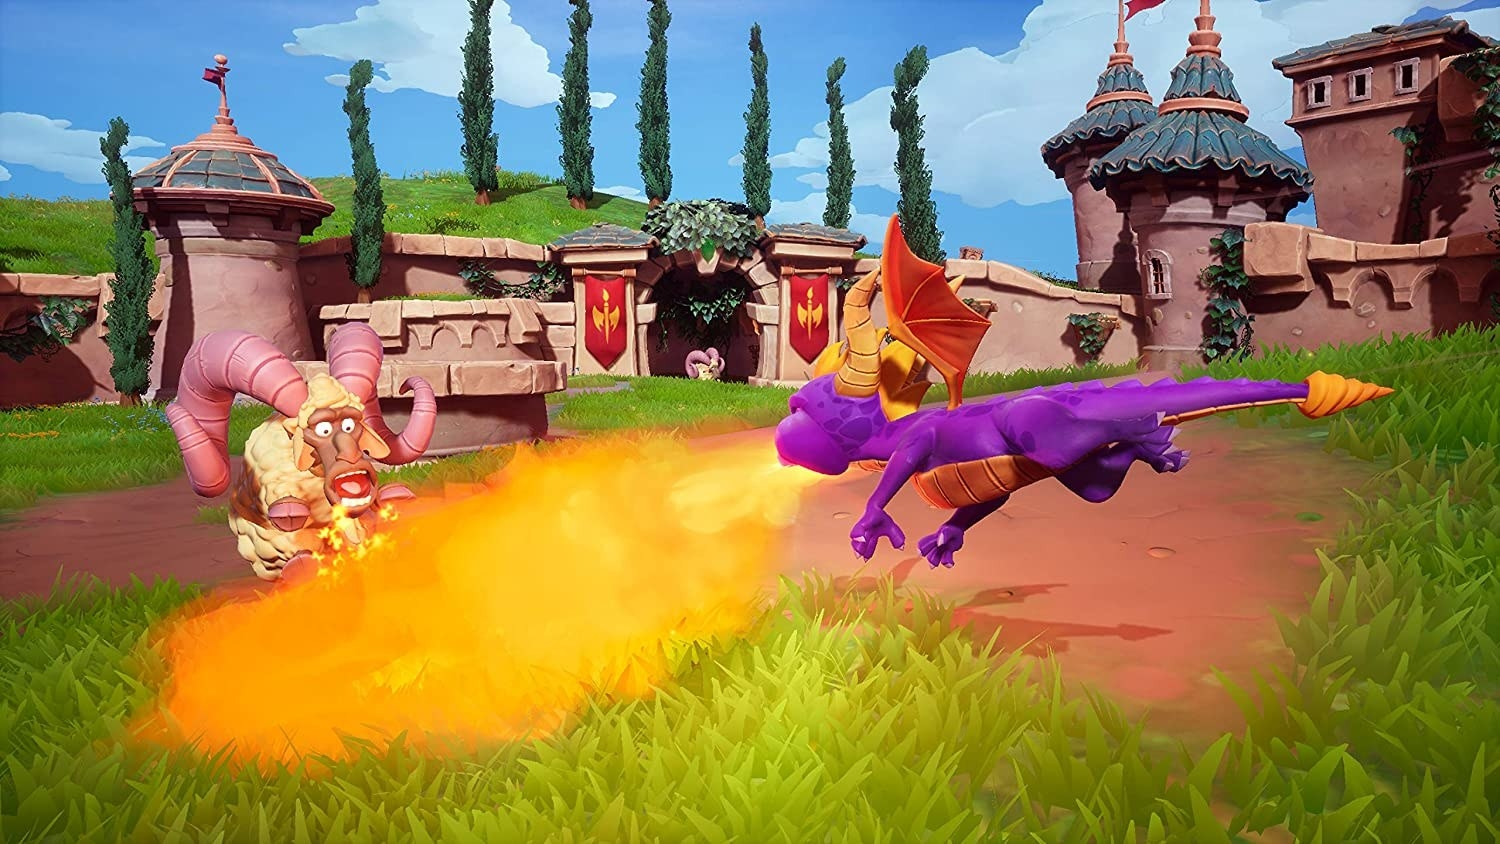 Spyro blowing fire at a ram